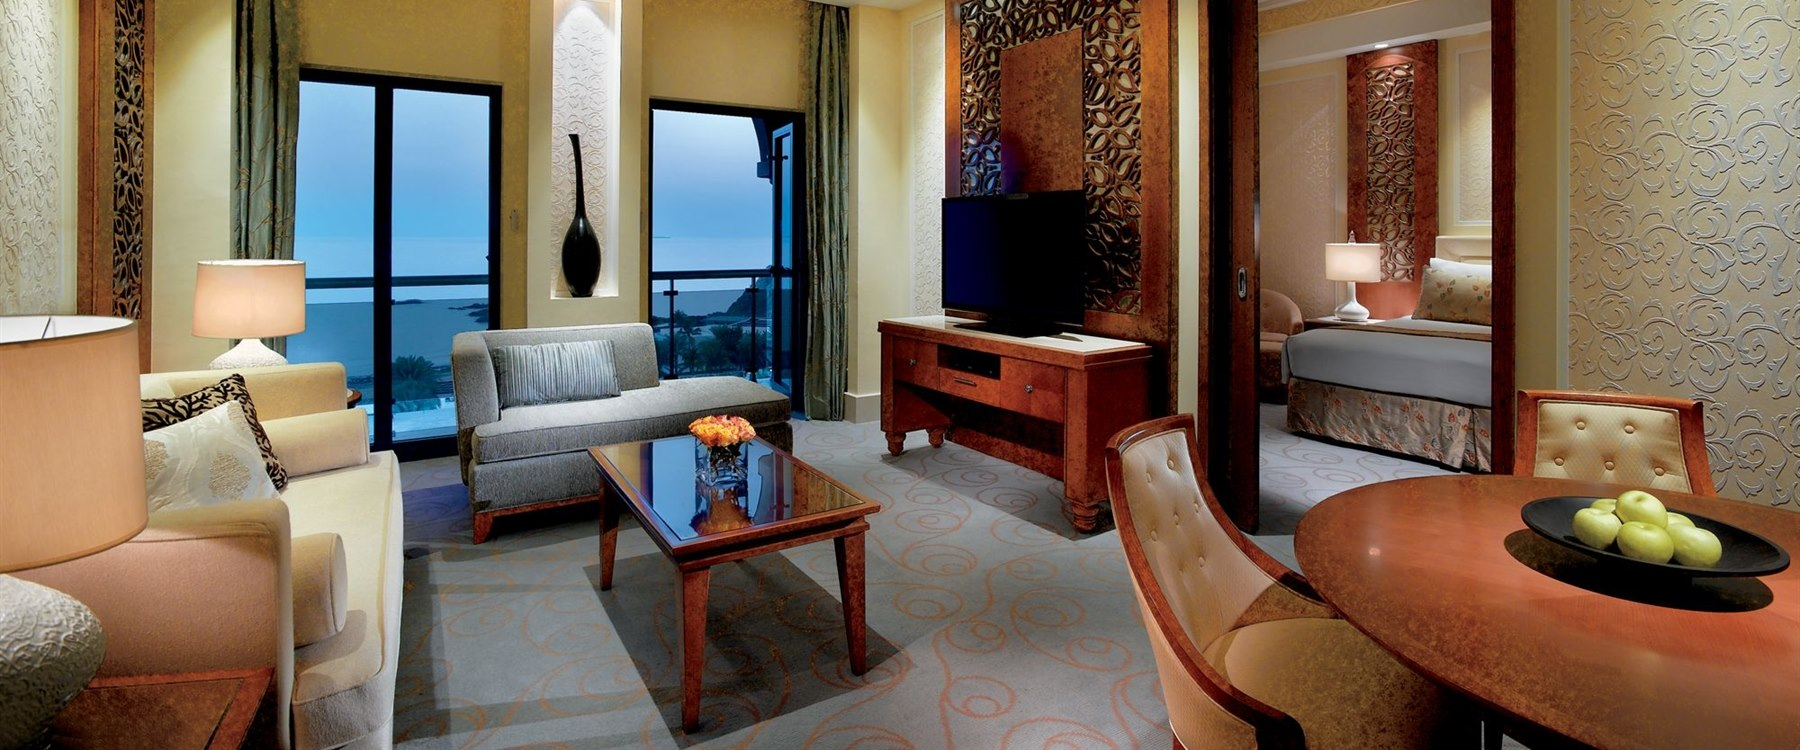 Executive Sea View Suite at Al Bustan Palace, A Ritz-Carlton Hotel, Muscat